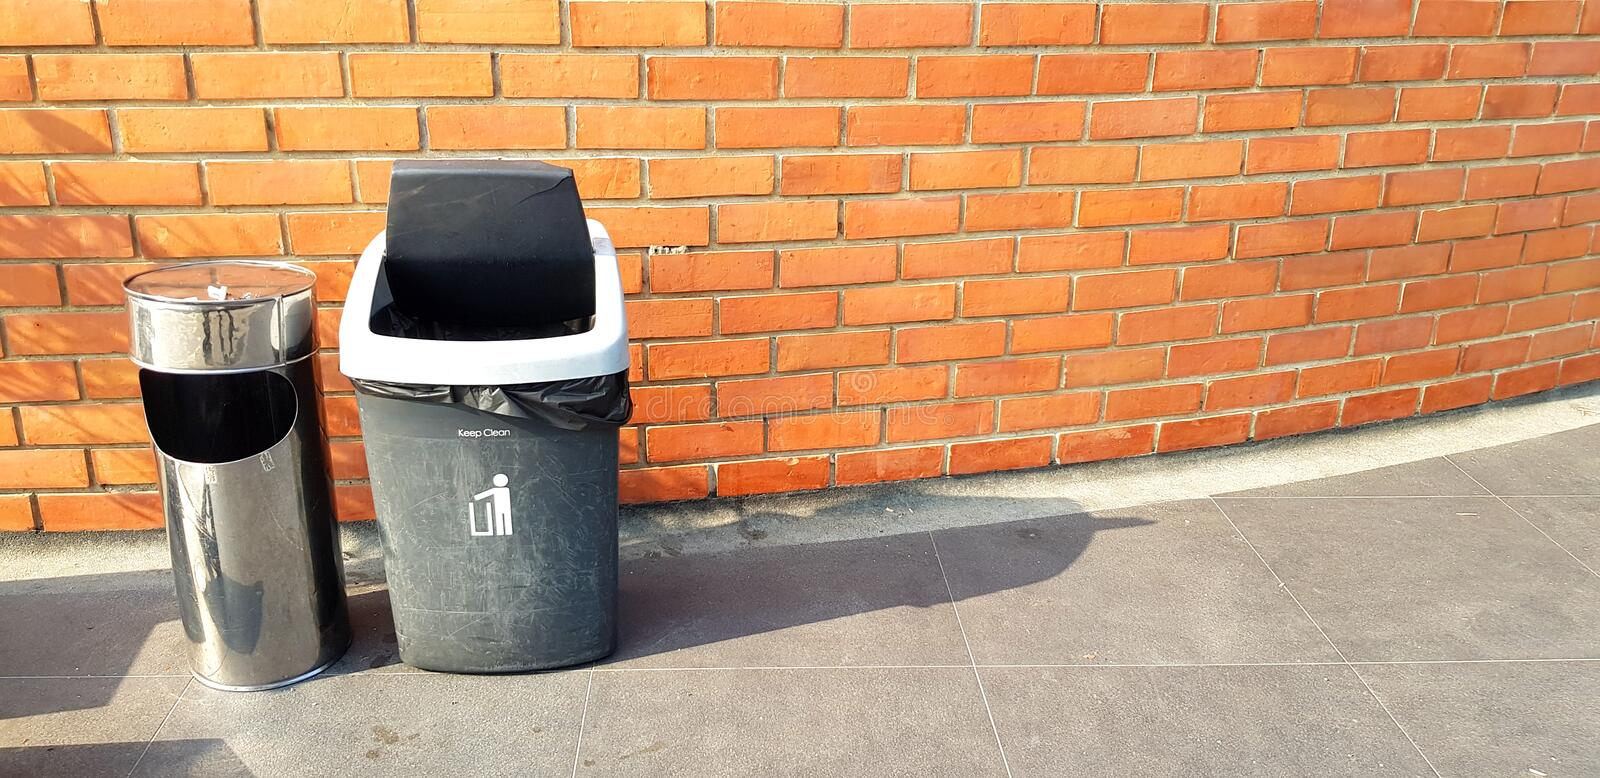 One stainless steel and Black plastic garbage putting on street with brown brick wall for people dumping trash, dross or refuse. And copy space - Cleaning area royalty free stock image